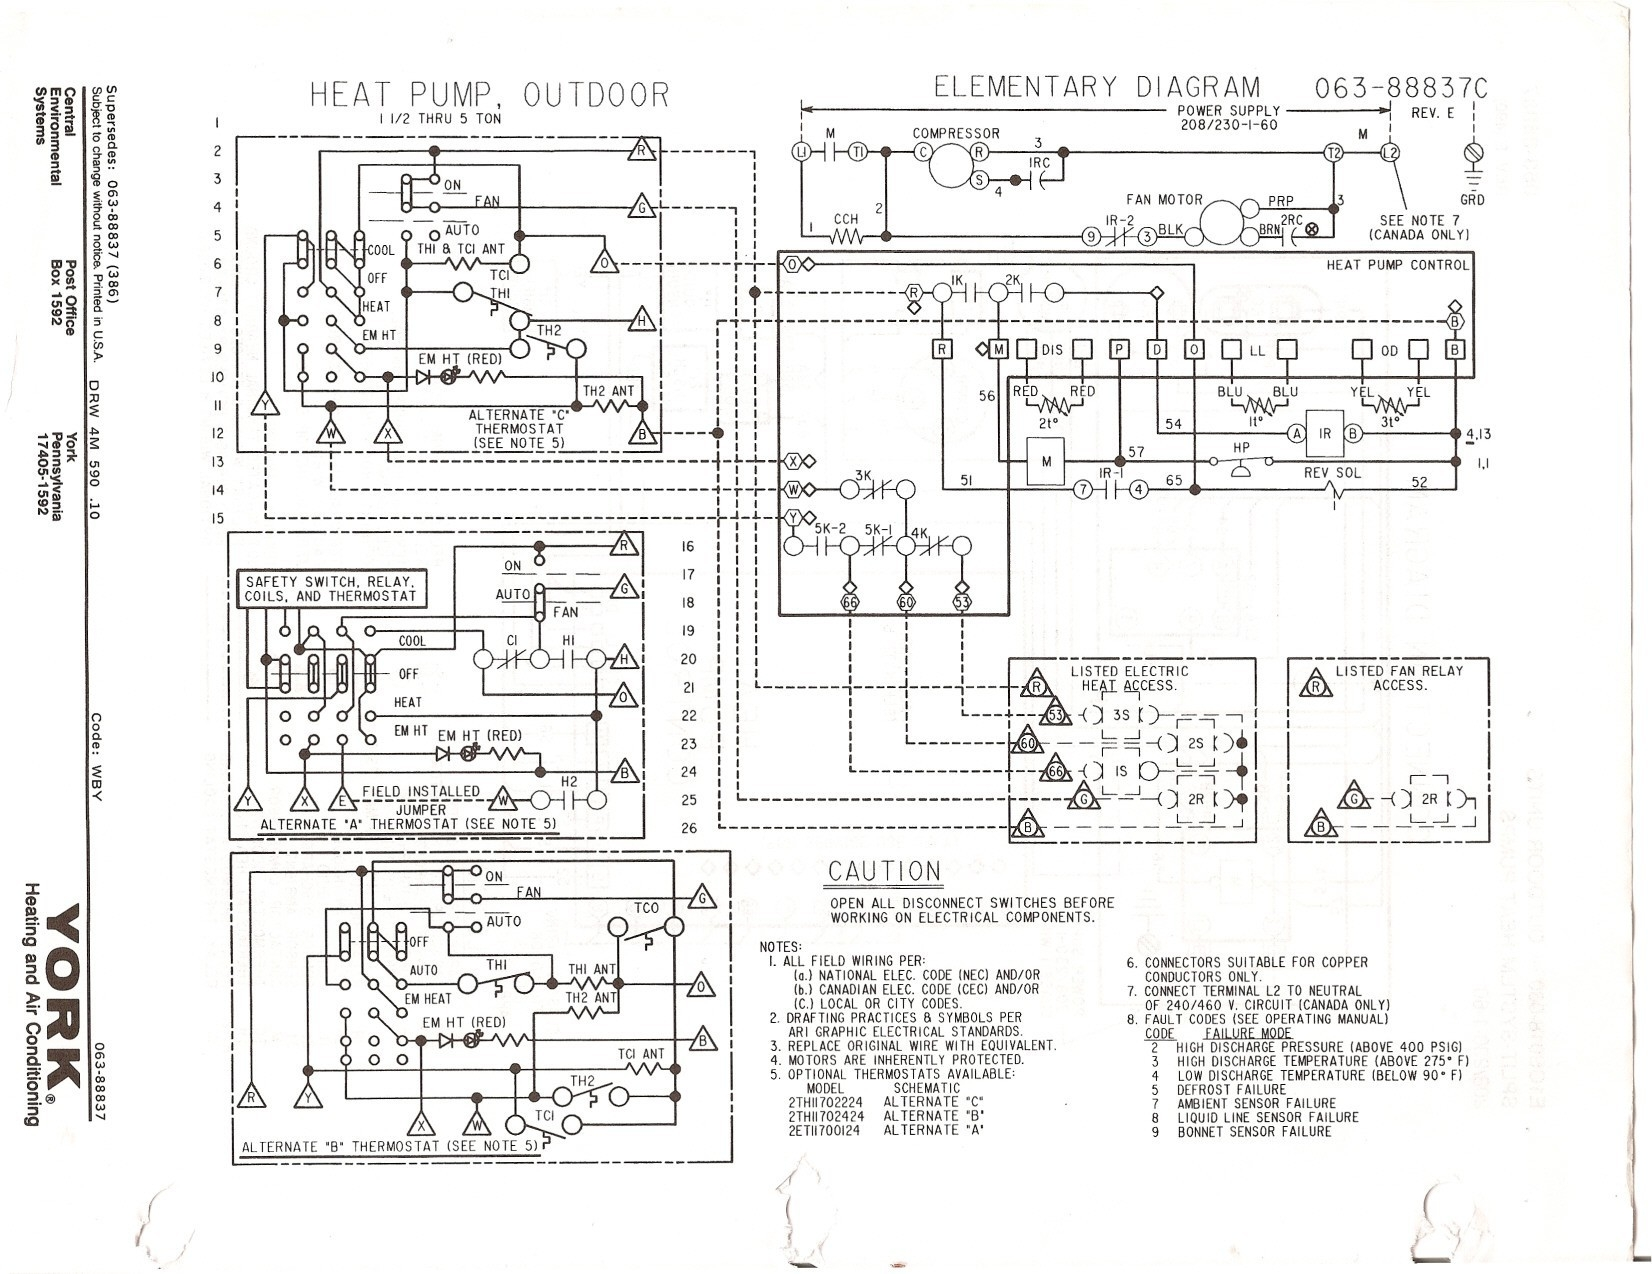 york electric furnace wiring diagram Collection-York Electric Furnace Wiring Diagram Fresh York D7cg Wiring Schematic Wiring Diagram • 20-h